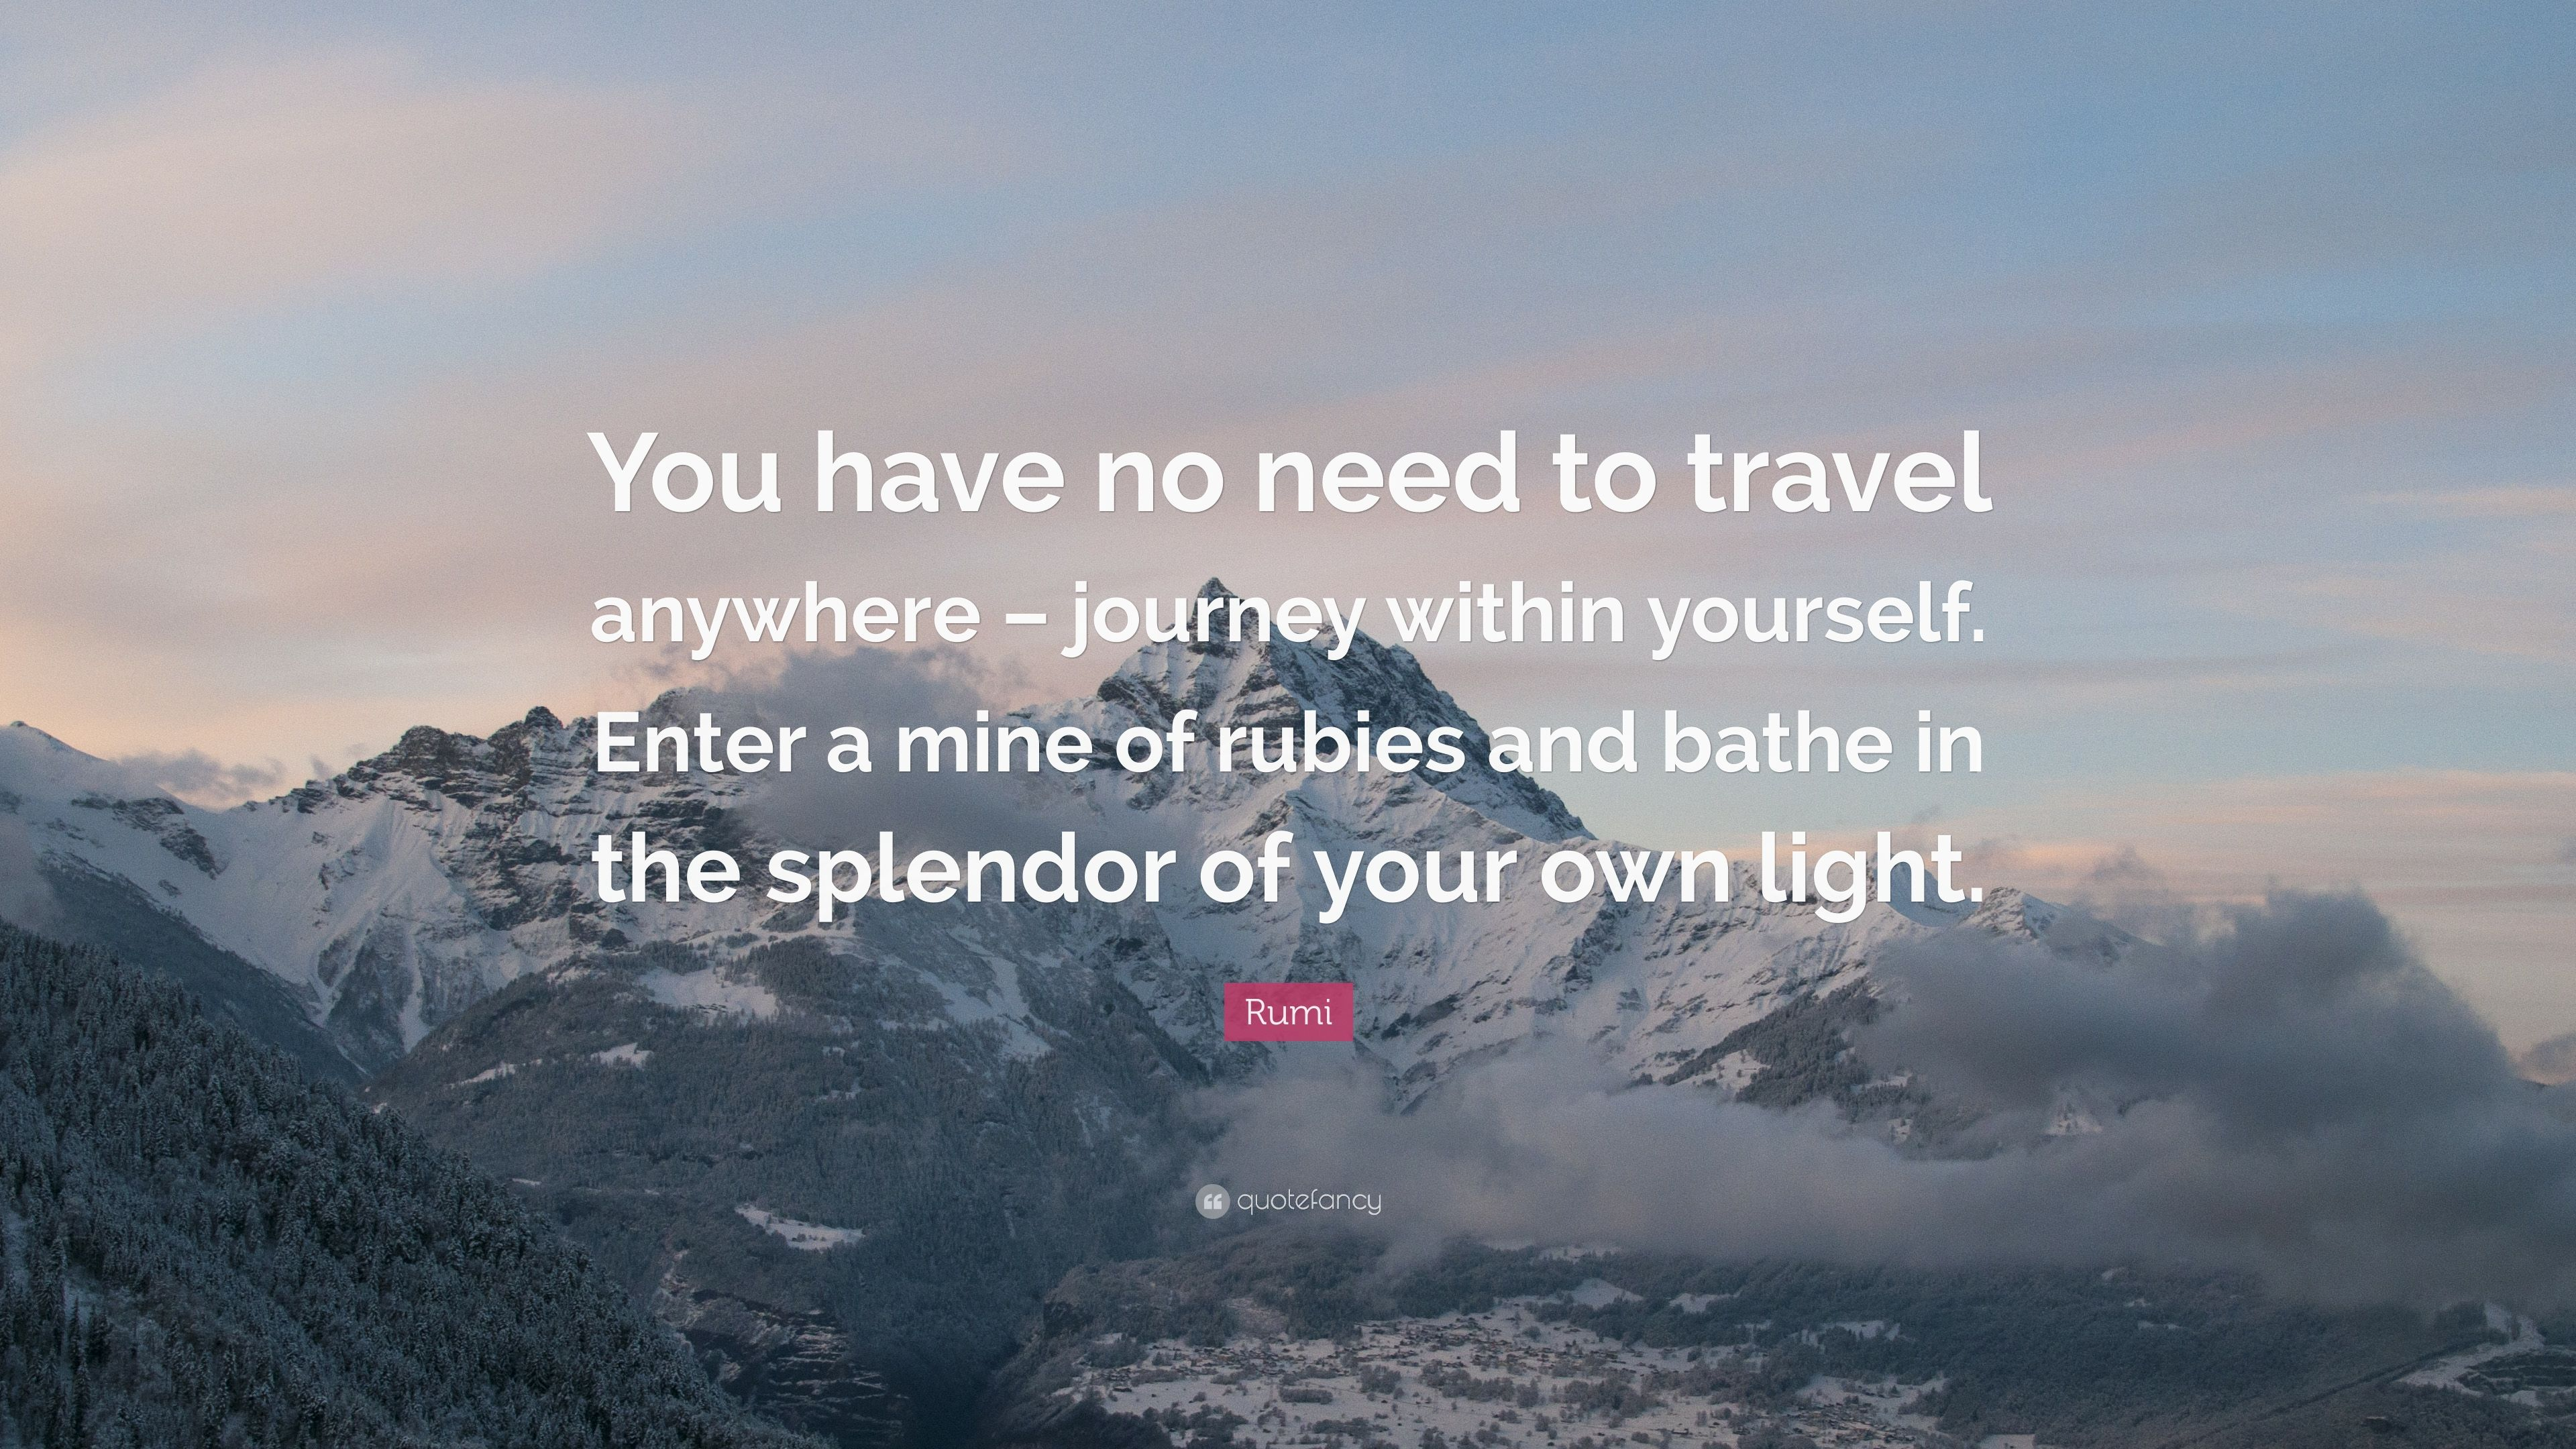 Rumi Quote You Have No Need To Travel Anywhere Journey Within